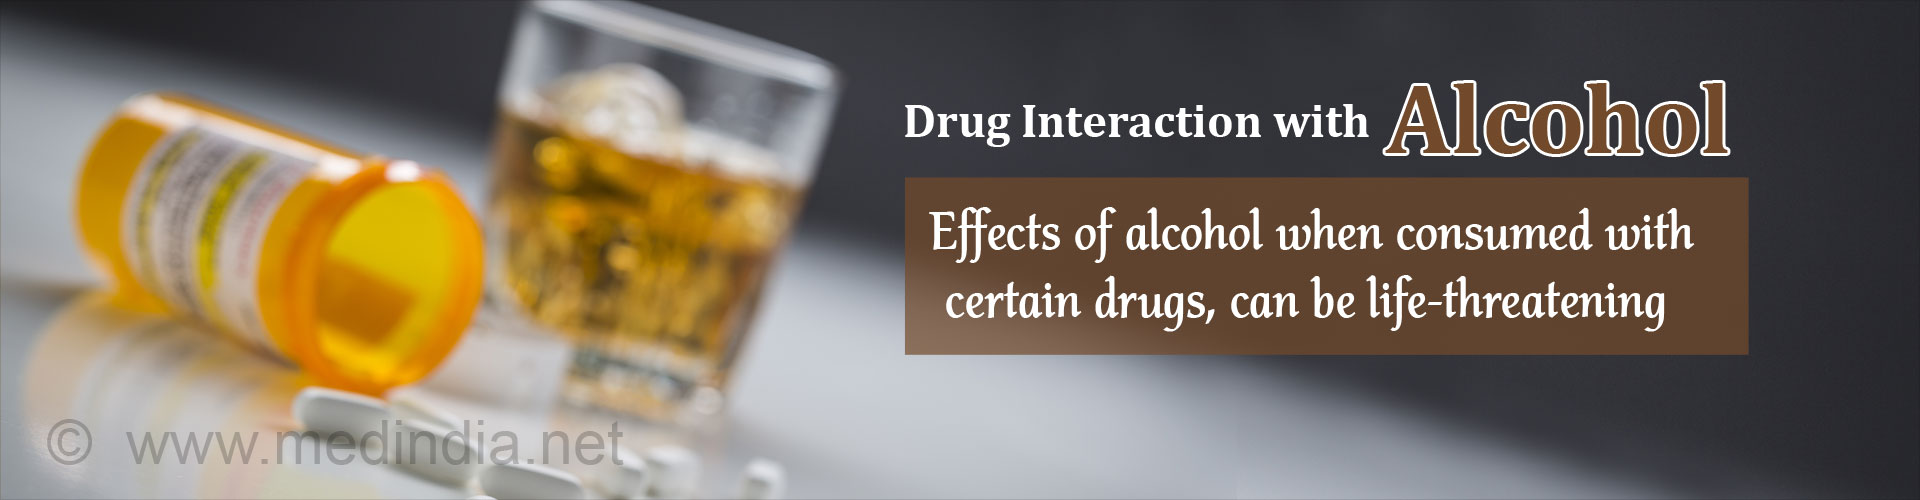 Drug interaction with alcohol Effects of alcohol when consumed with certain drugs, can be life-threatening